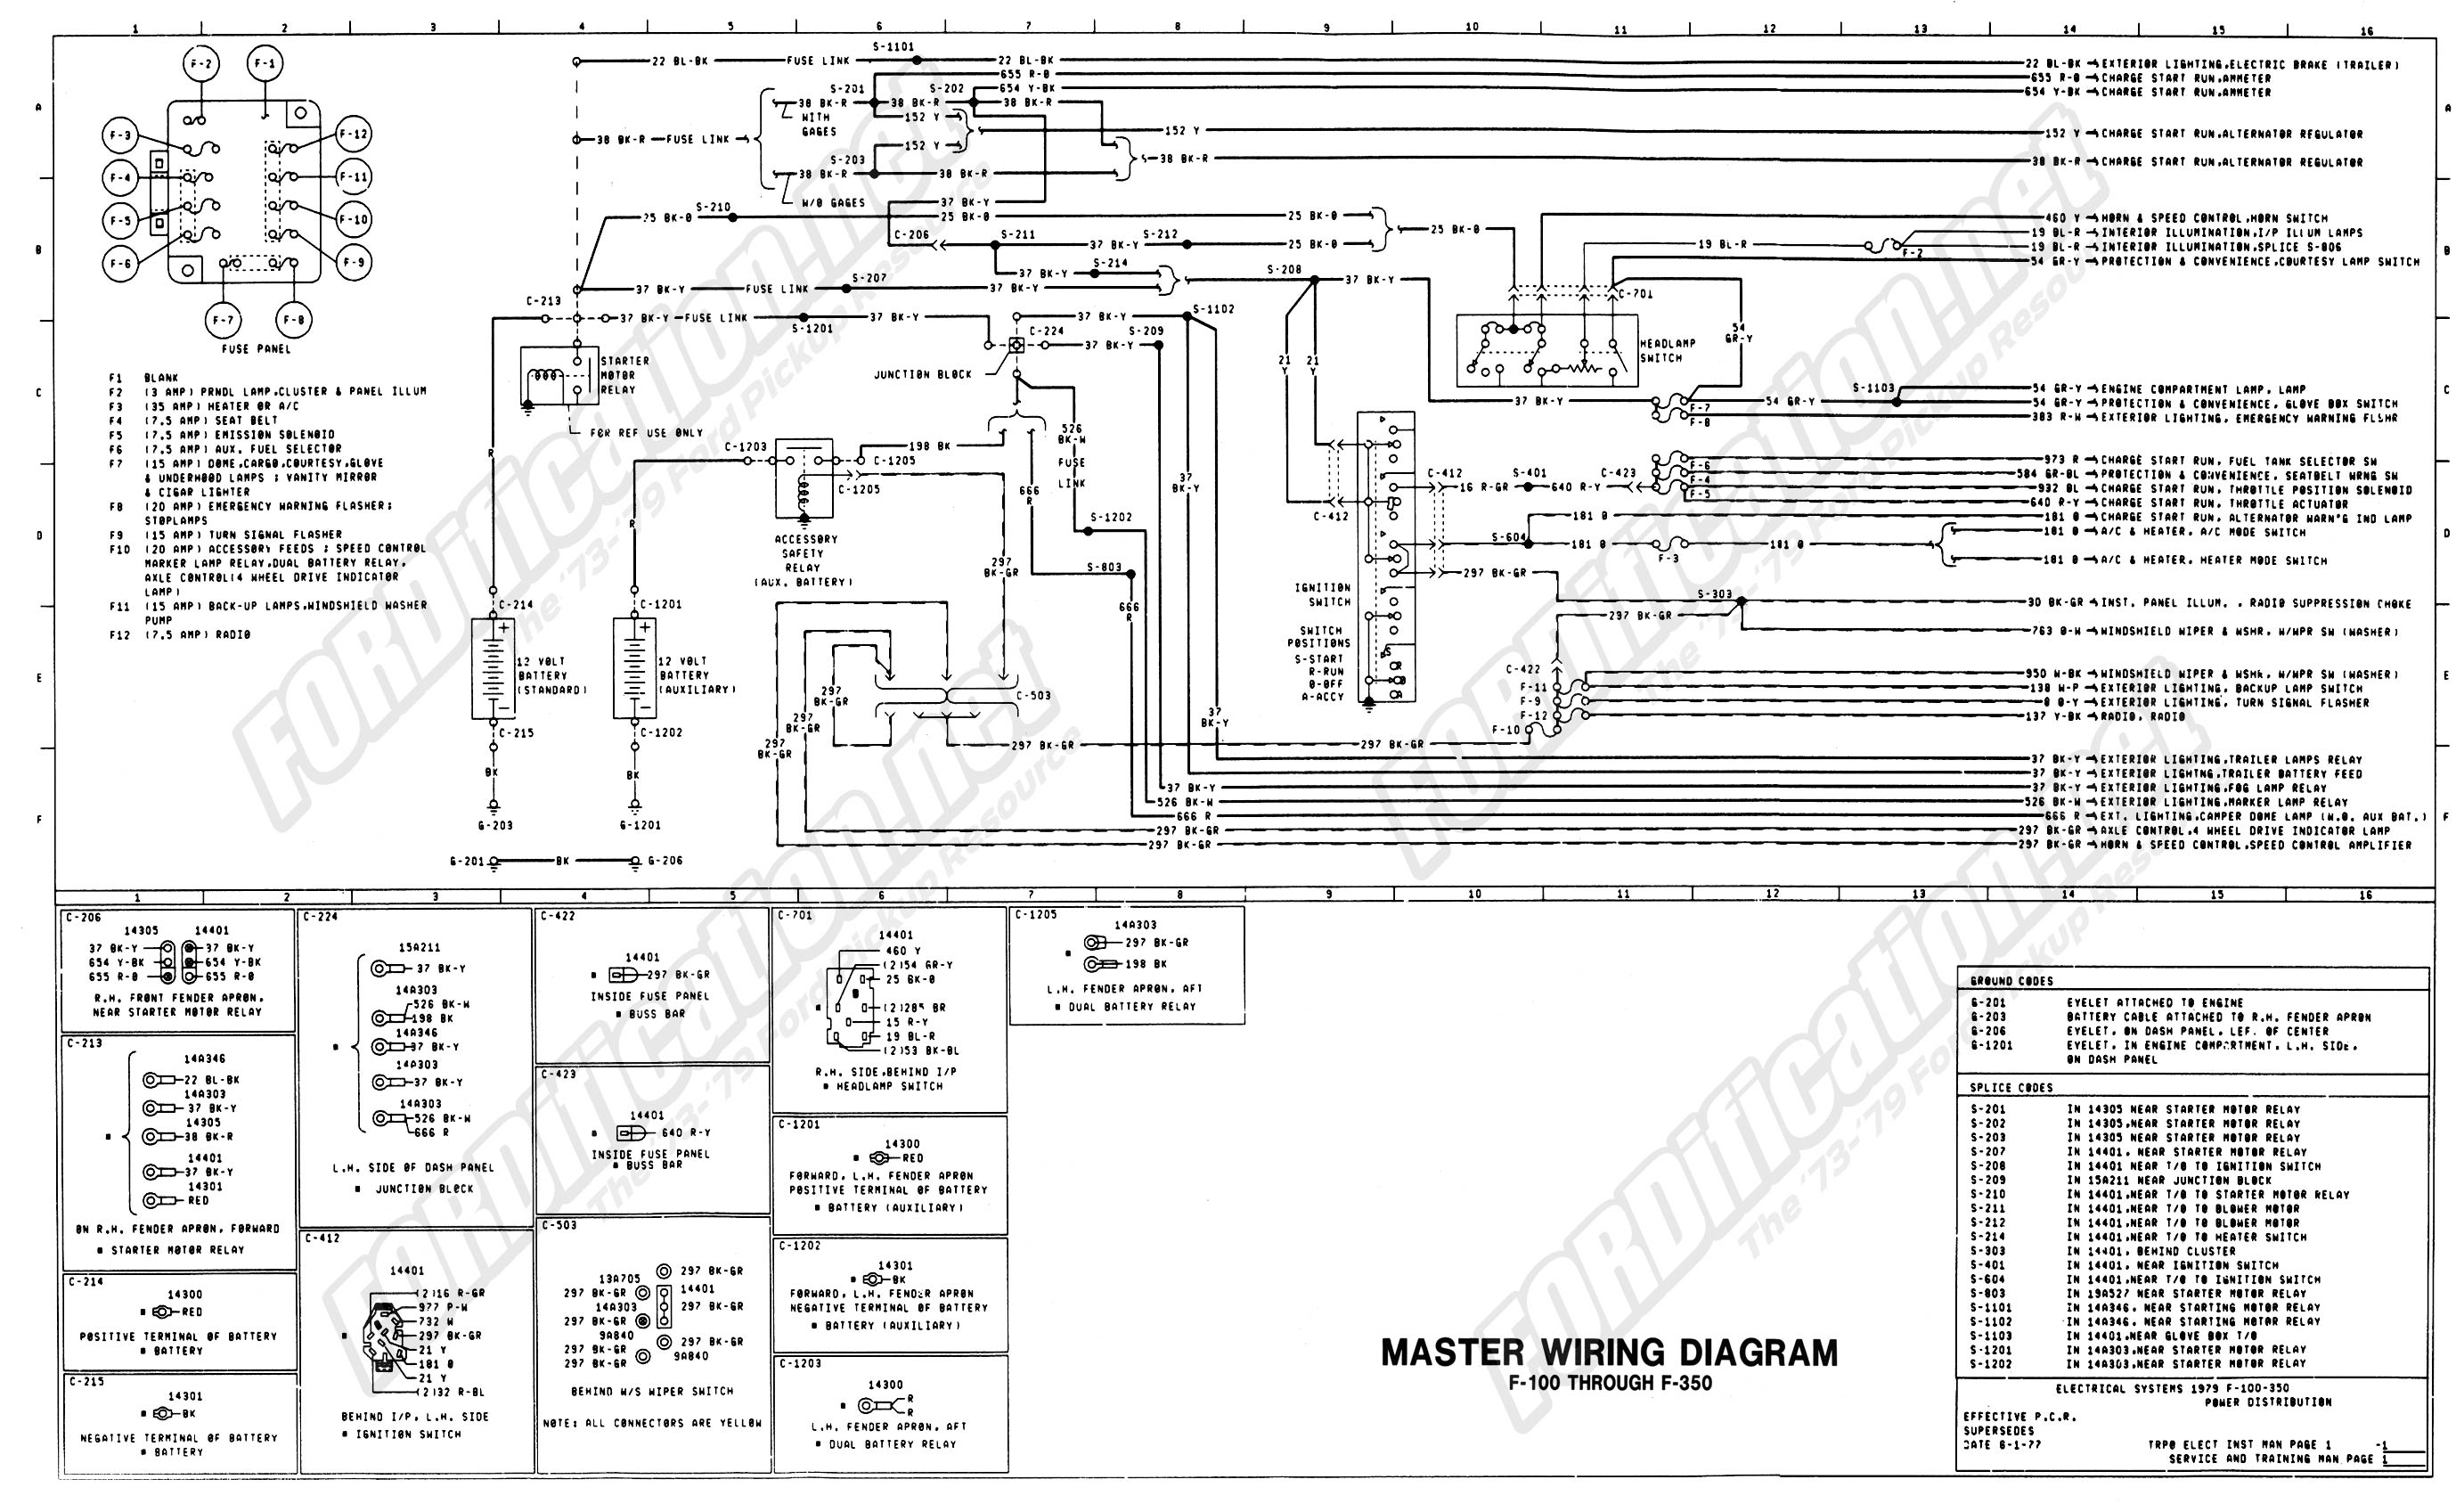 1979 ford f150 solenoid wiring diagram